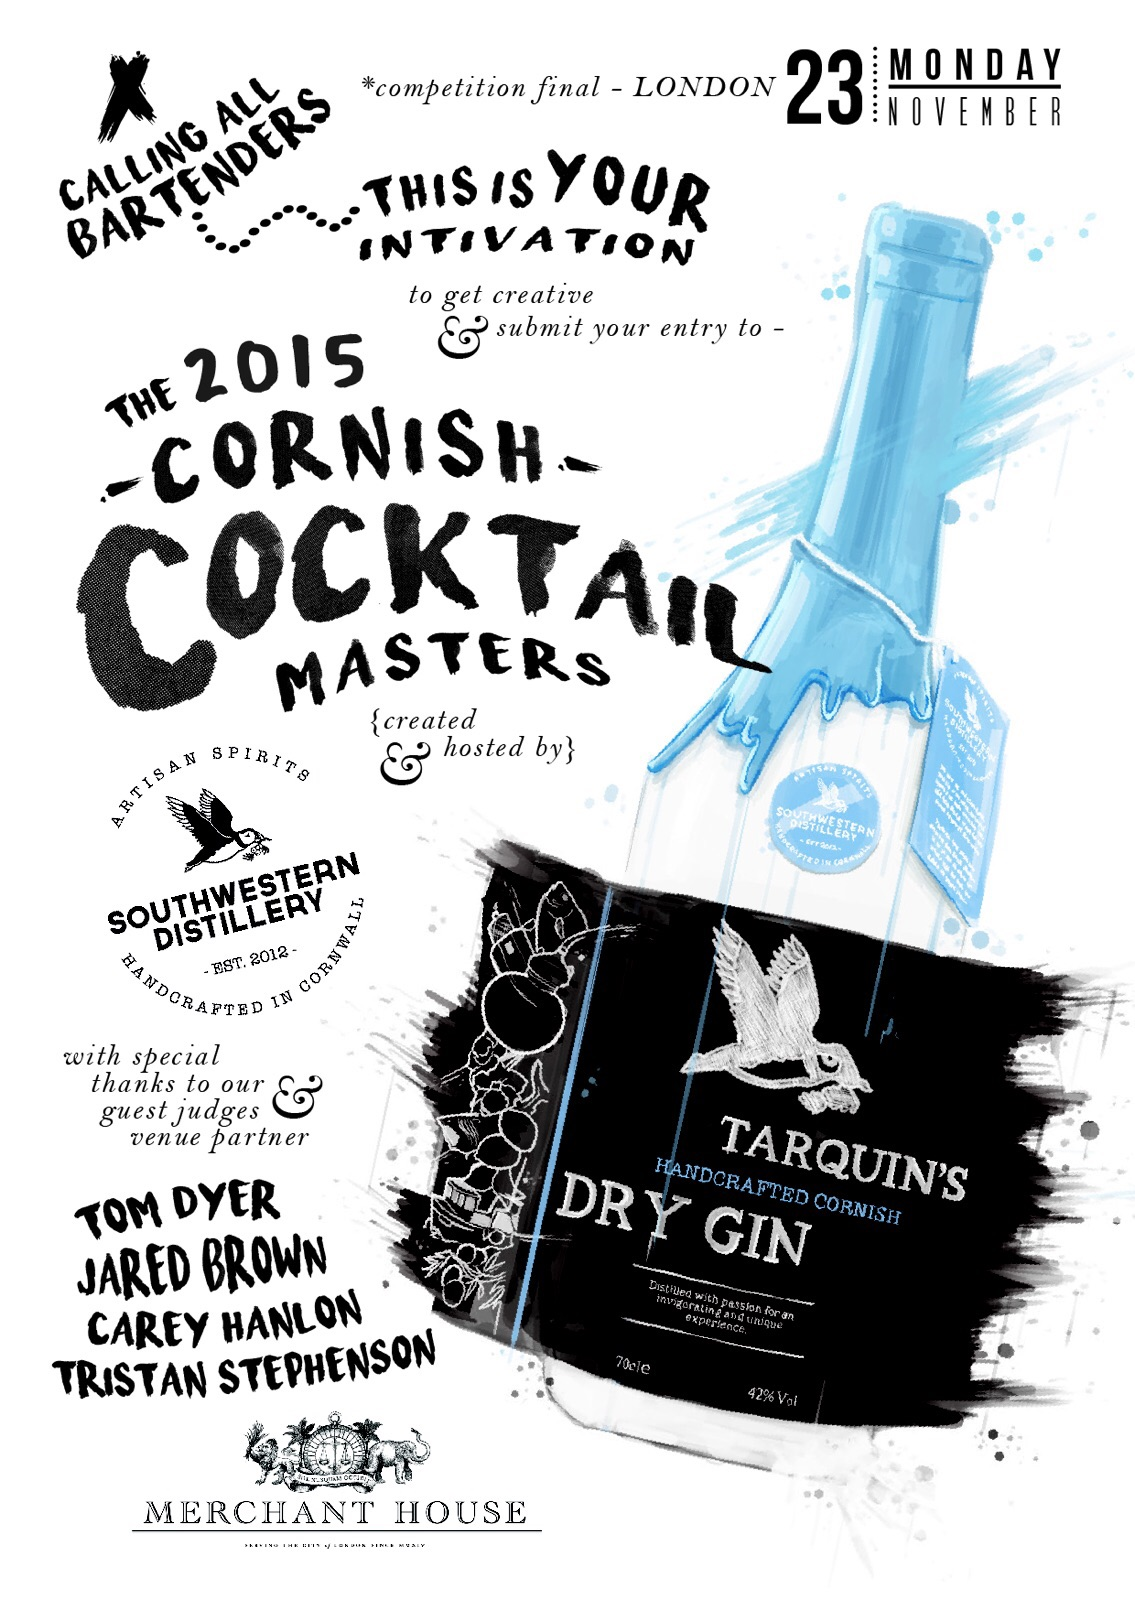 Tarquins-Gin-cocktail-masters